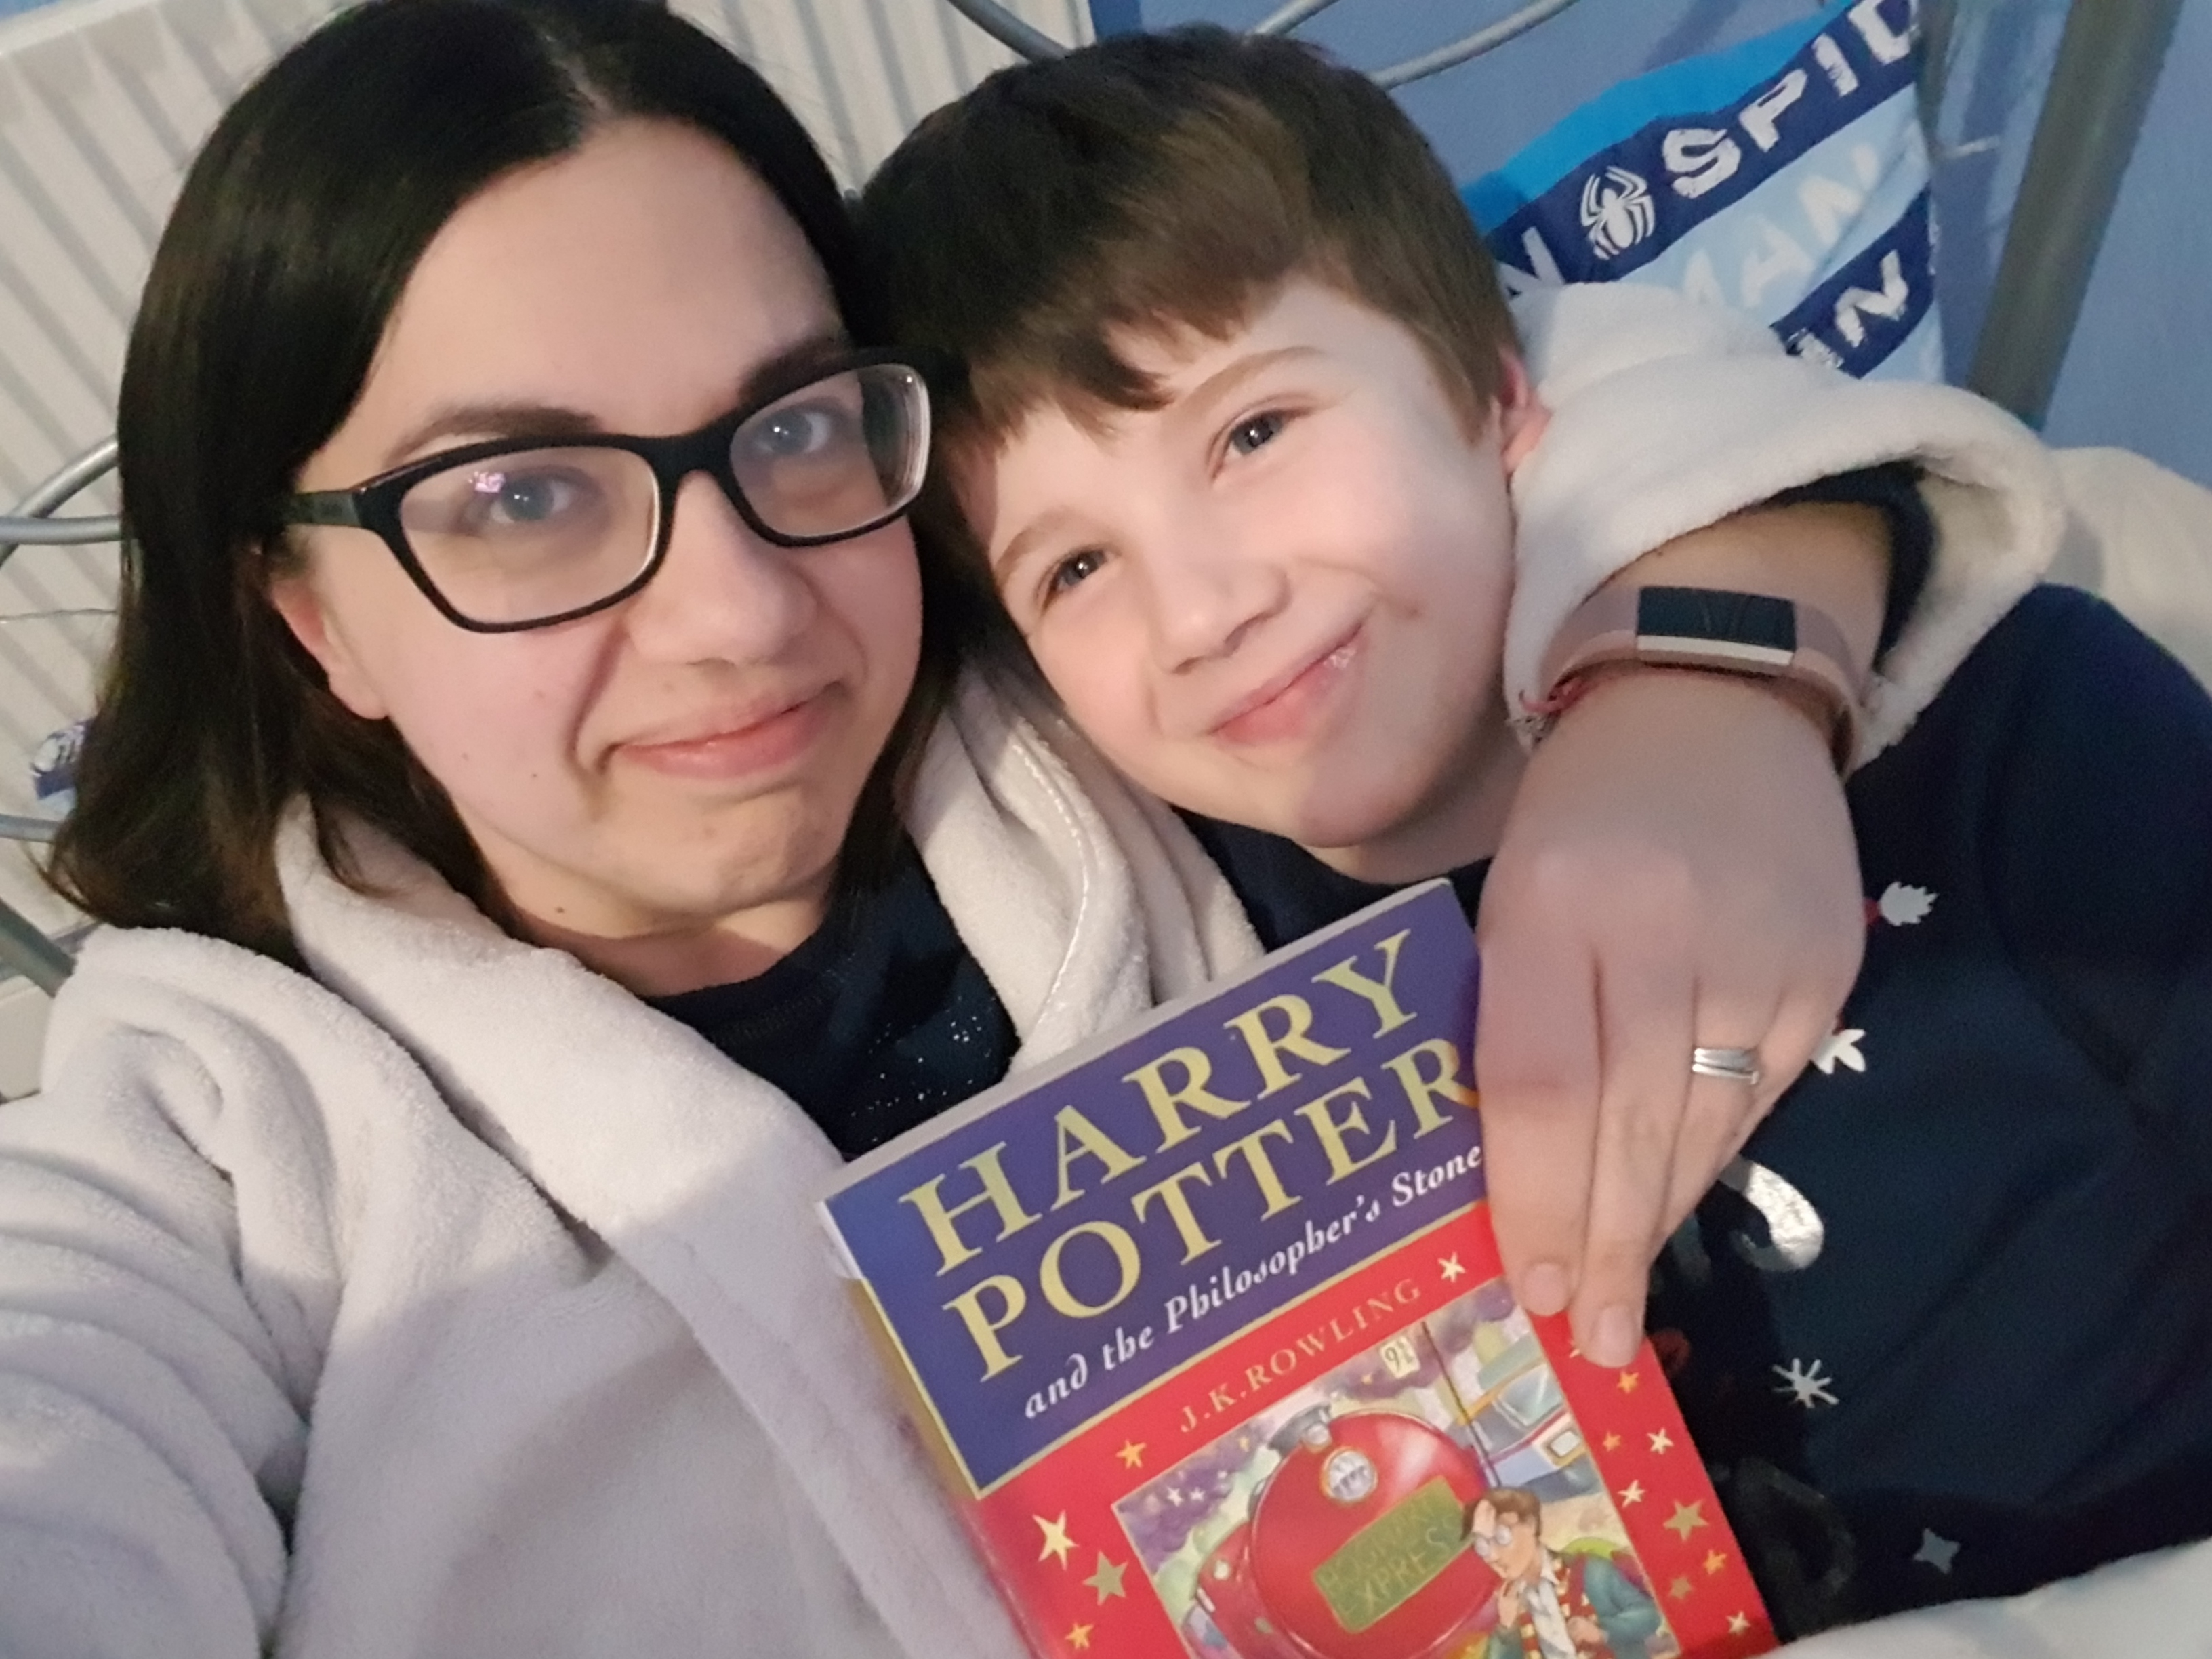 Mummy and Jacob with Harry Potter